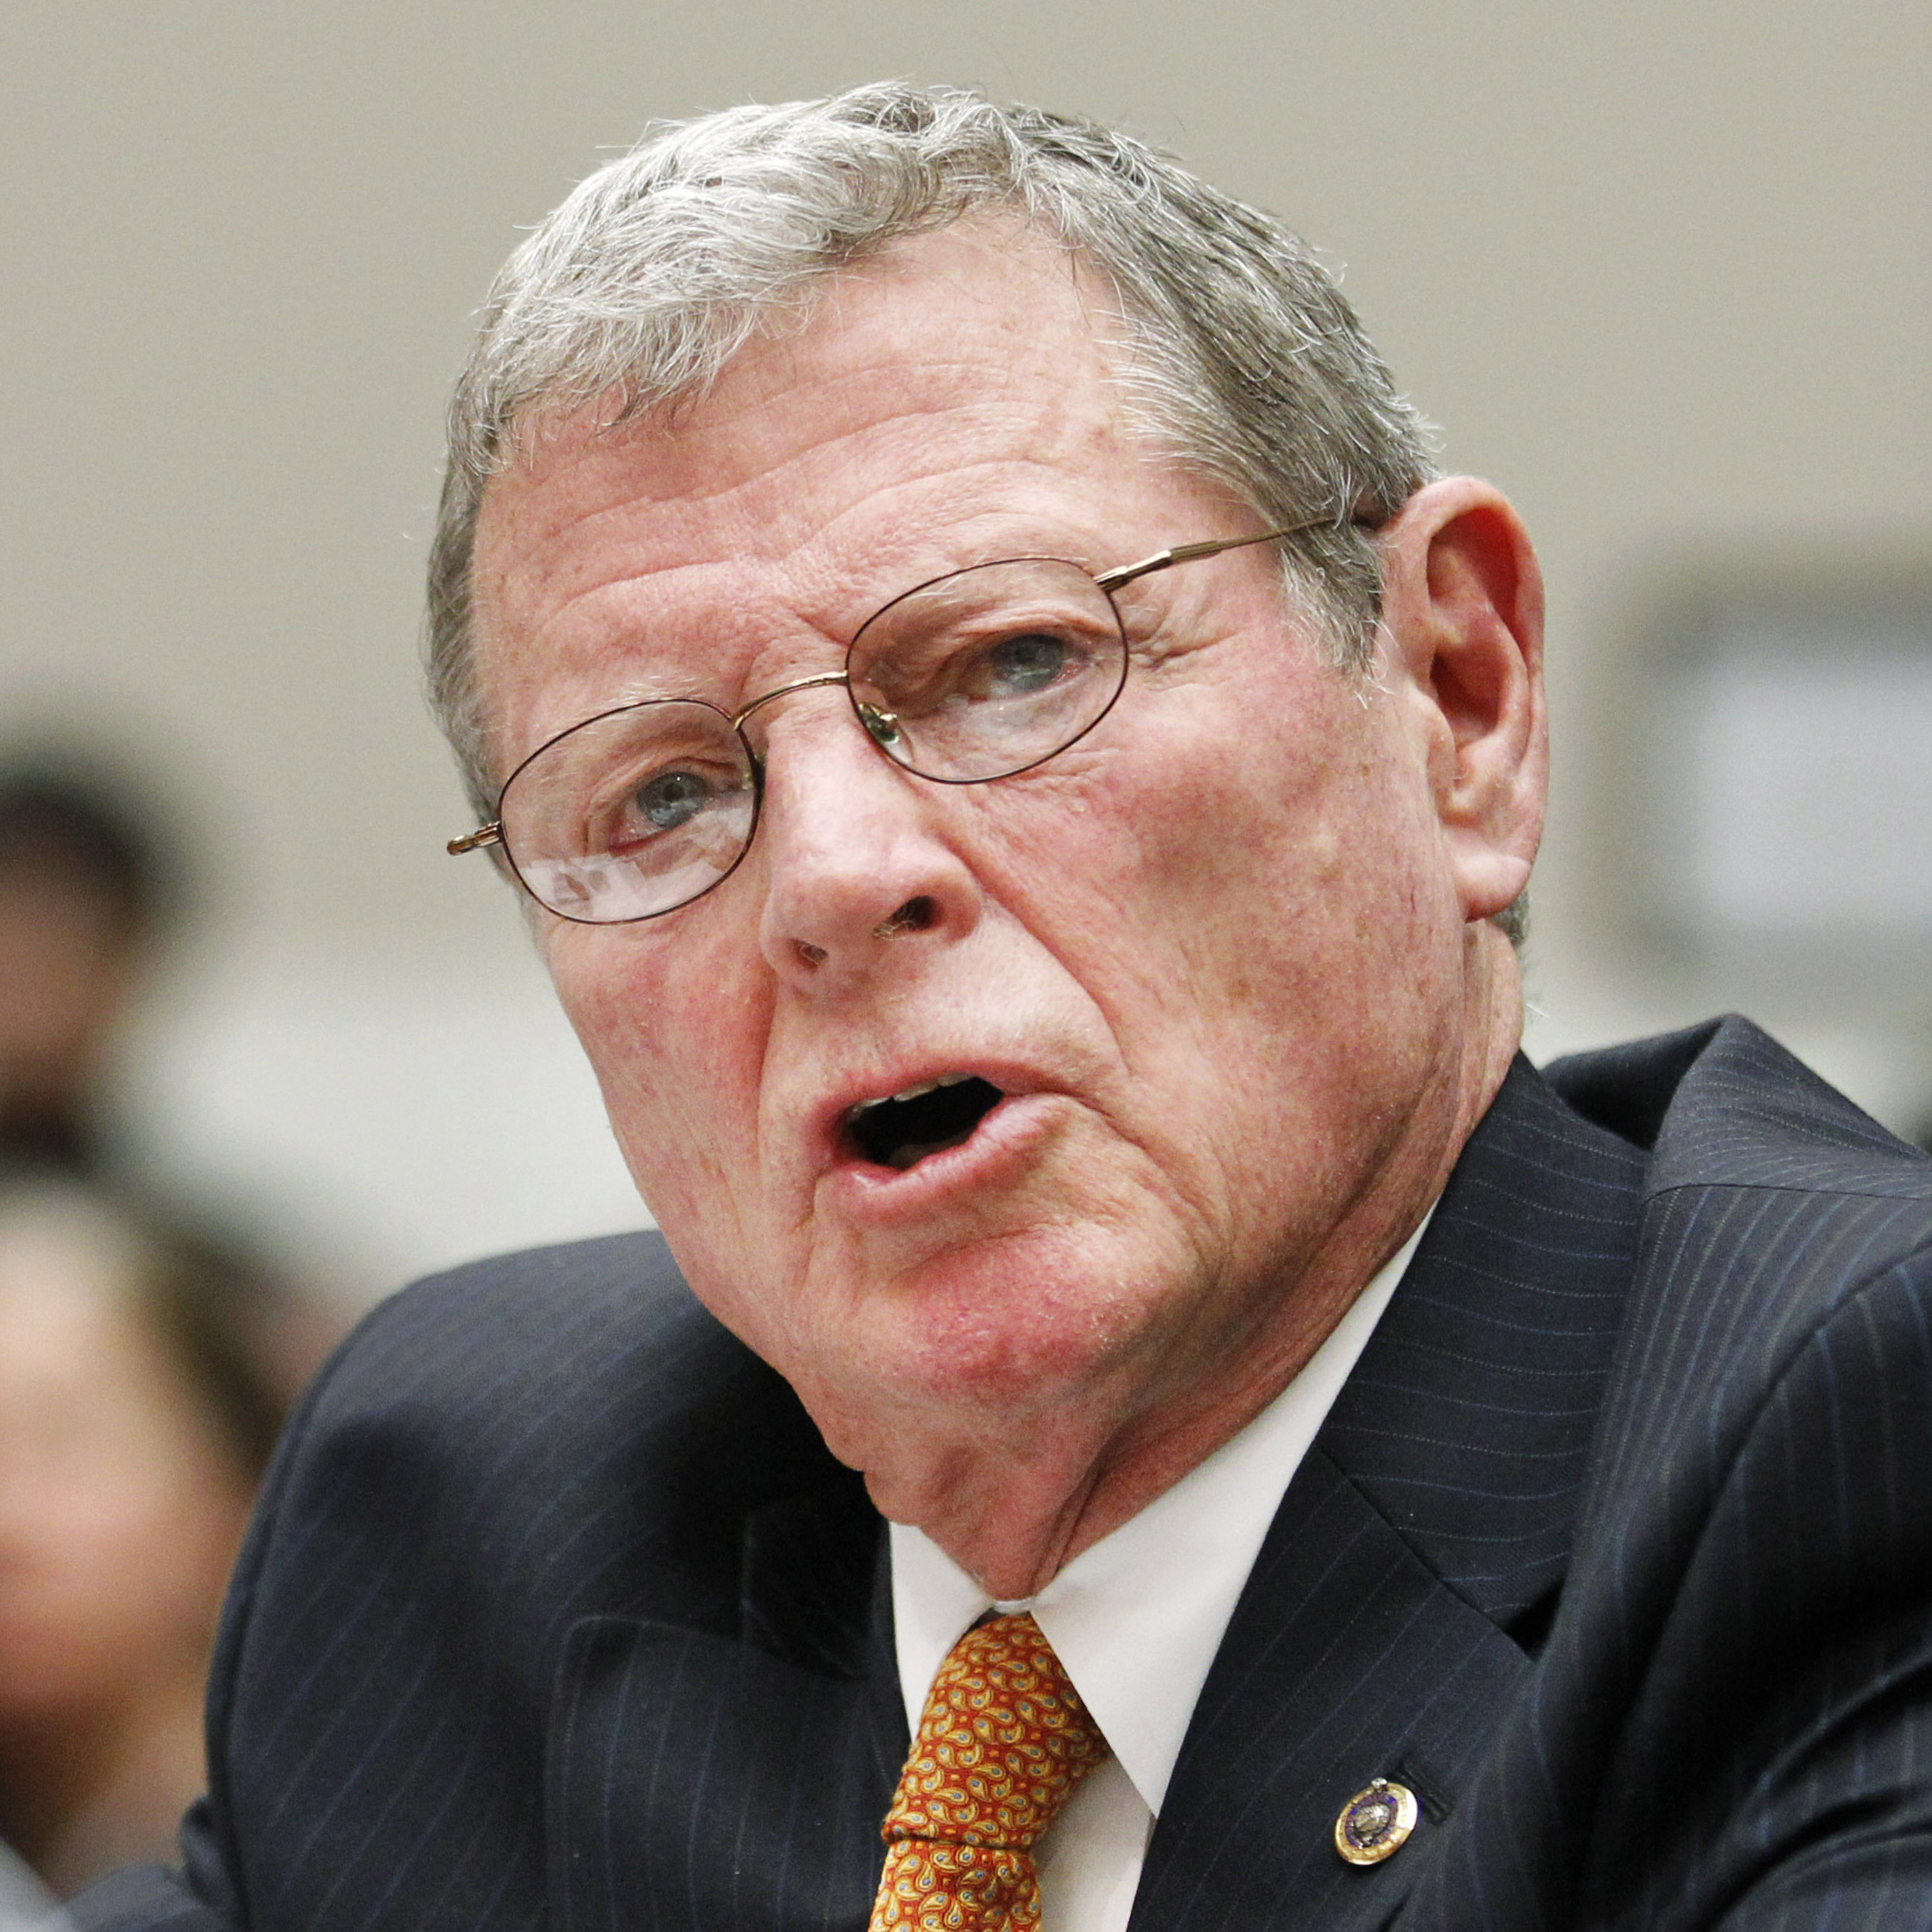 Sen. James Inhofe, R-Okla., testifies on Capitol Hill in Washington in 2011.